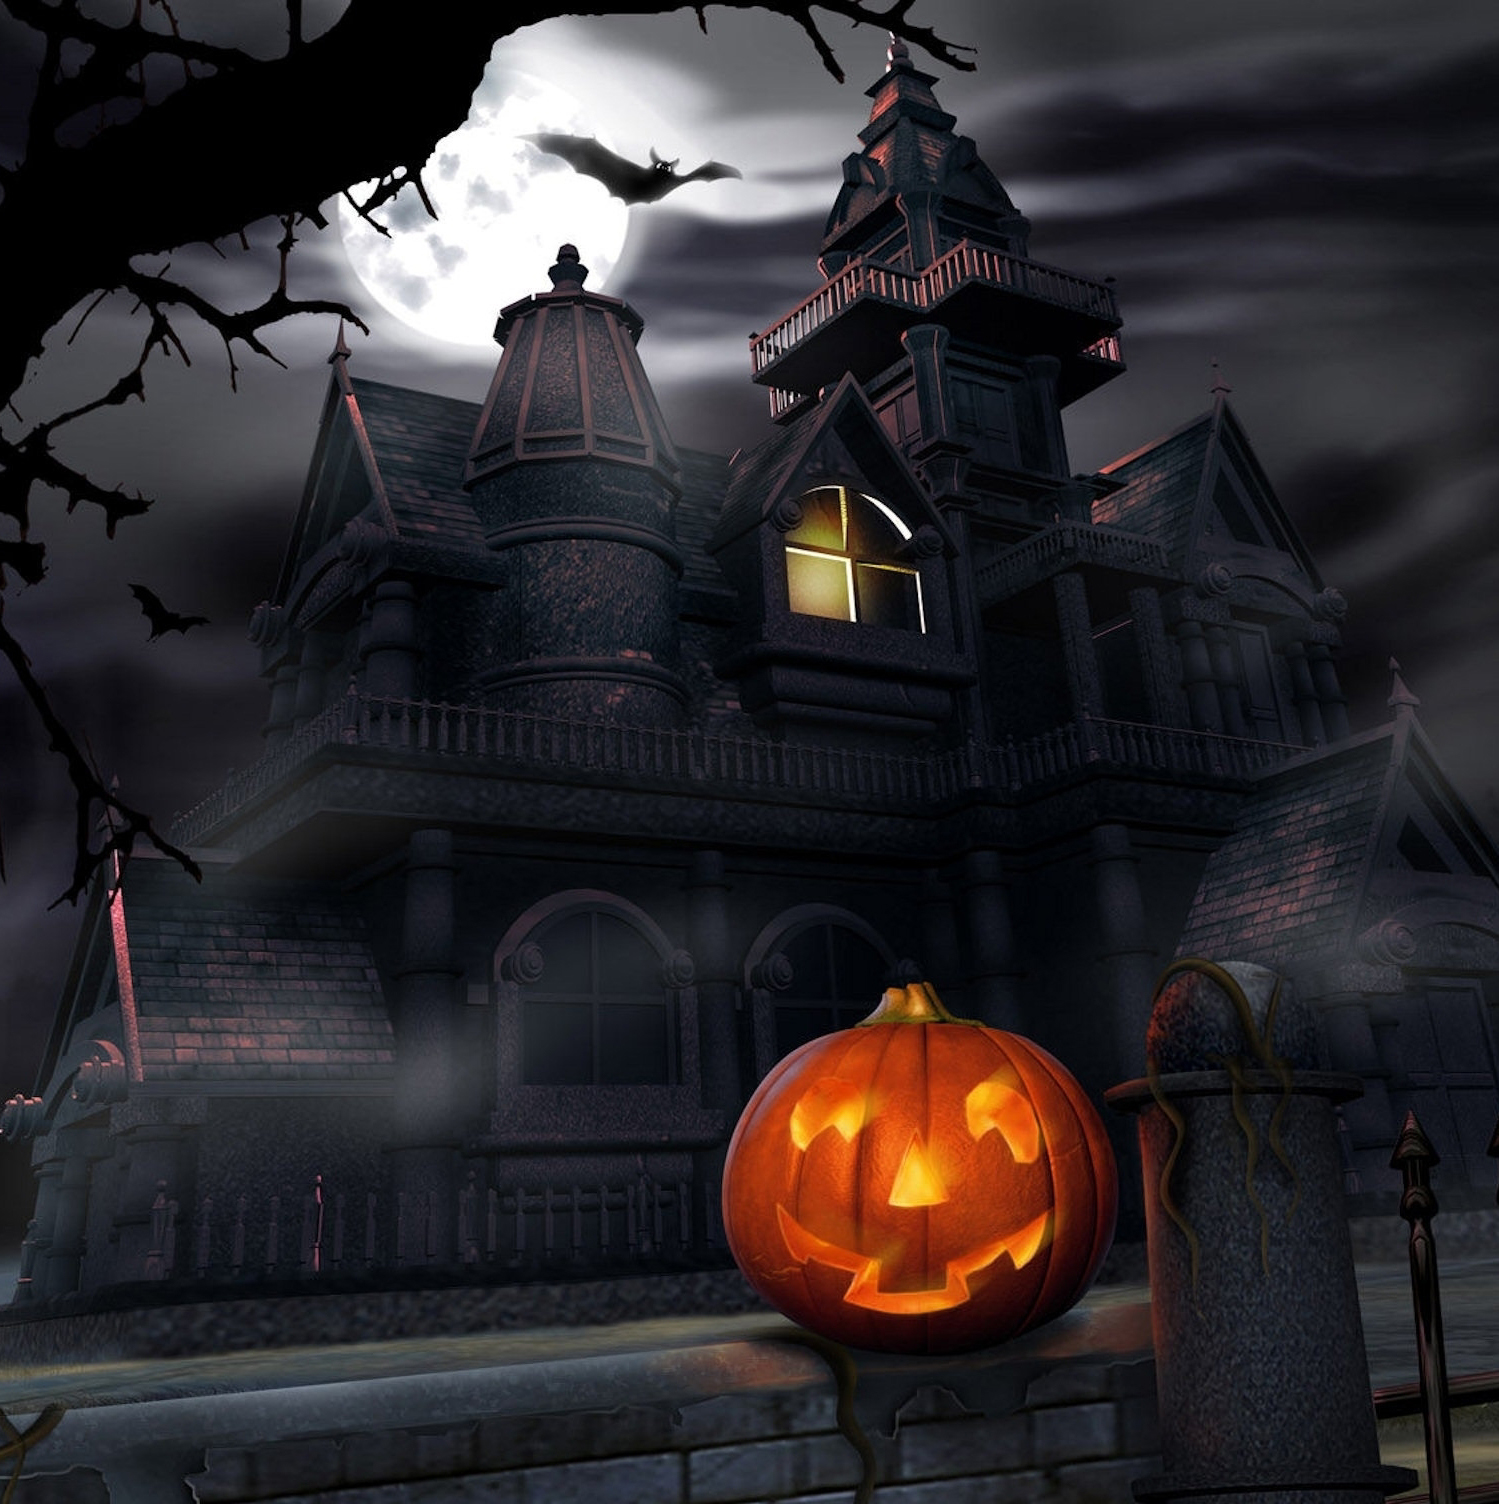 for those seeking the best los angeles halloween haunts we present this eclectic selection of creepy attractions theme parks haunted houses rides